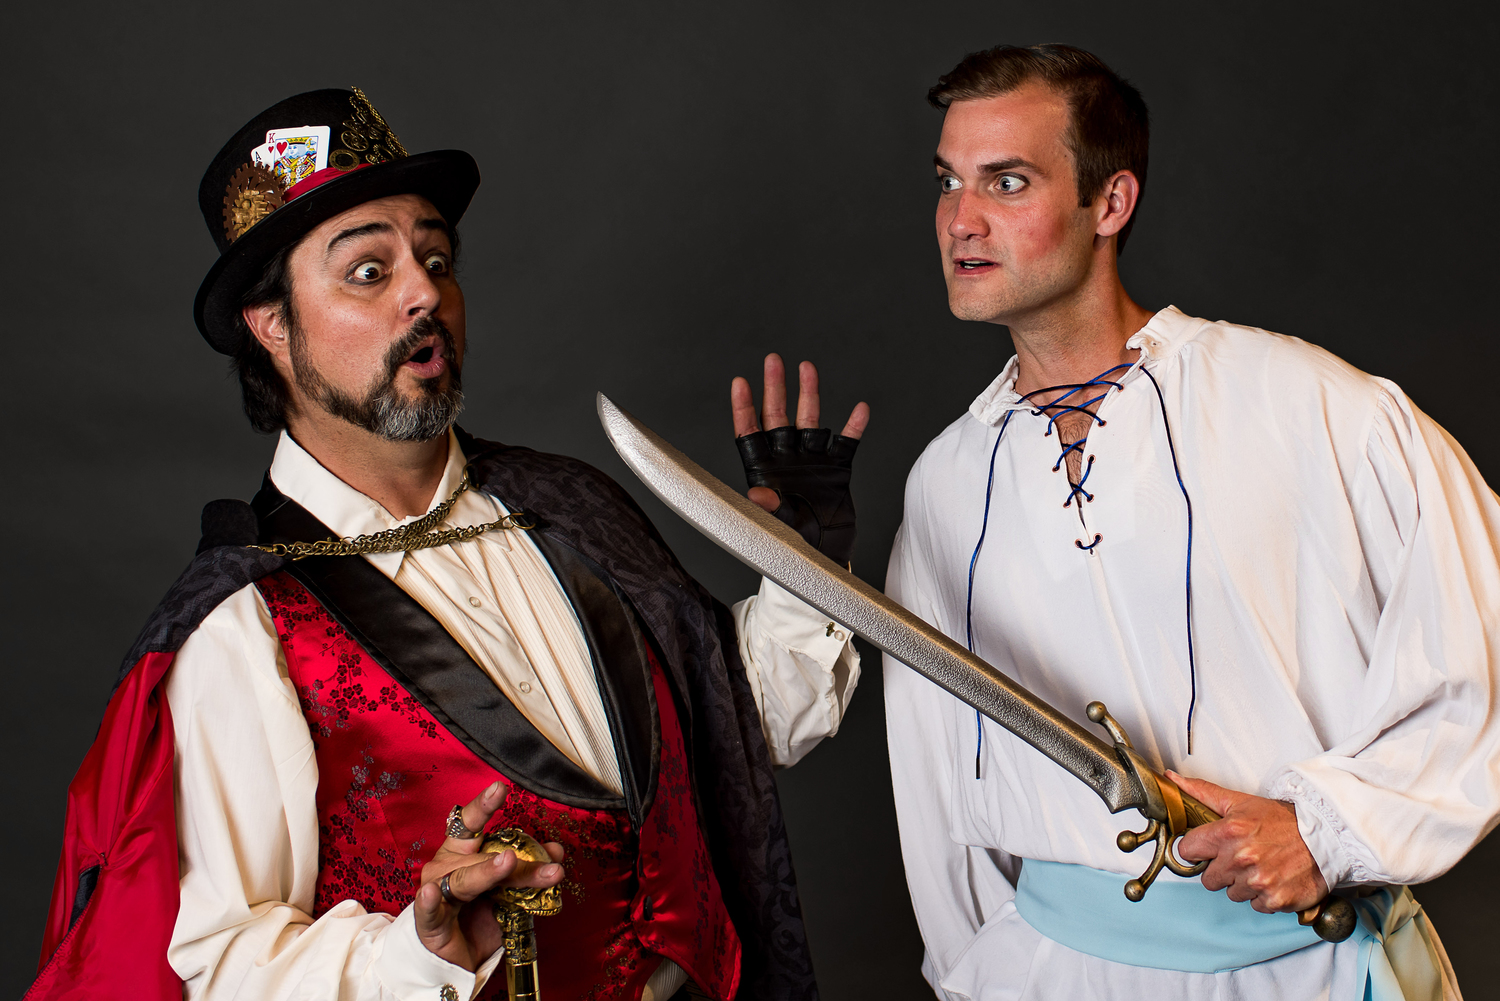 BWW Review: A Pirate's Life For Everyone at CenterPoint Legacy's THE PIRATES OF PENZANCE